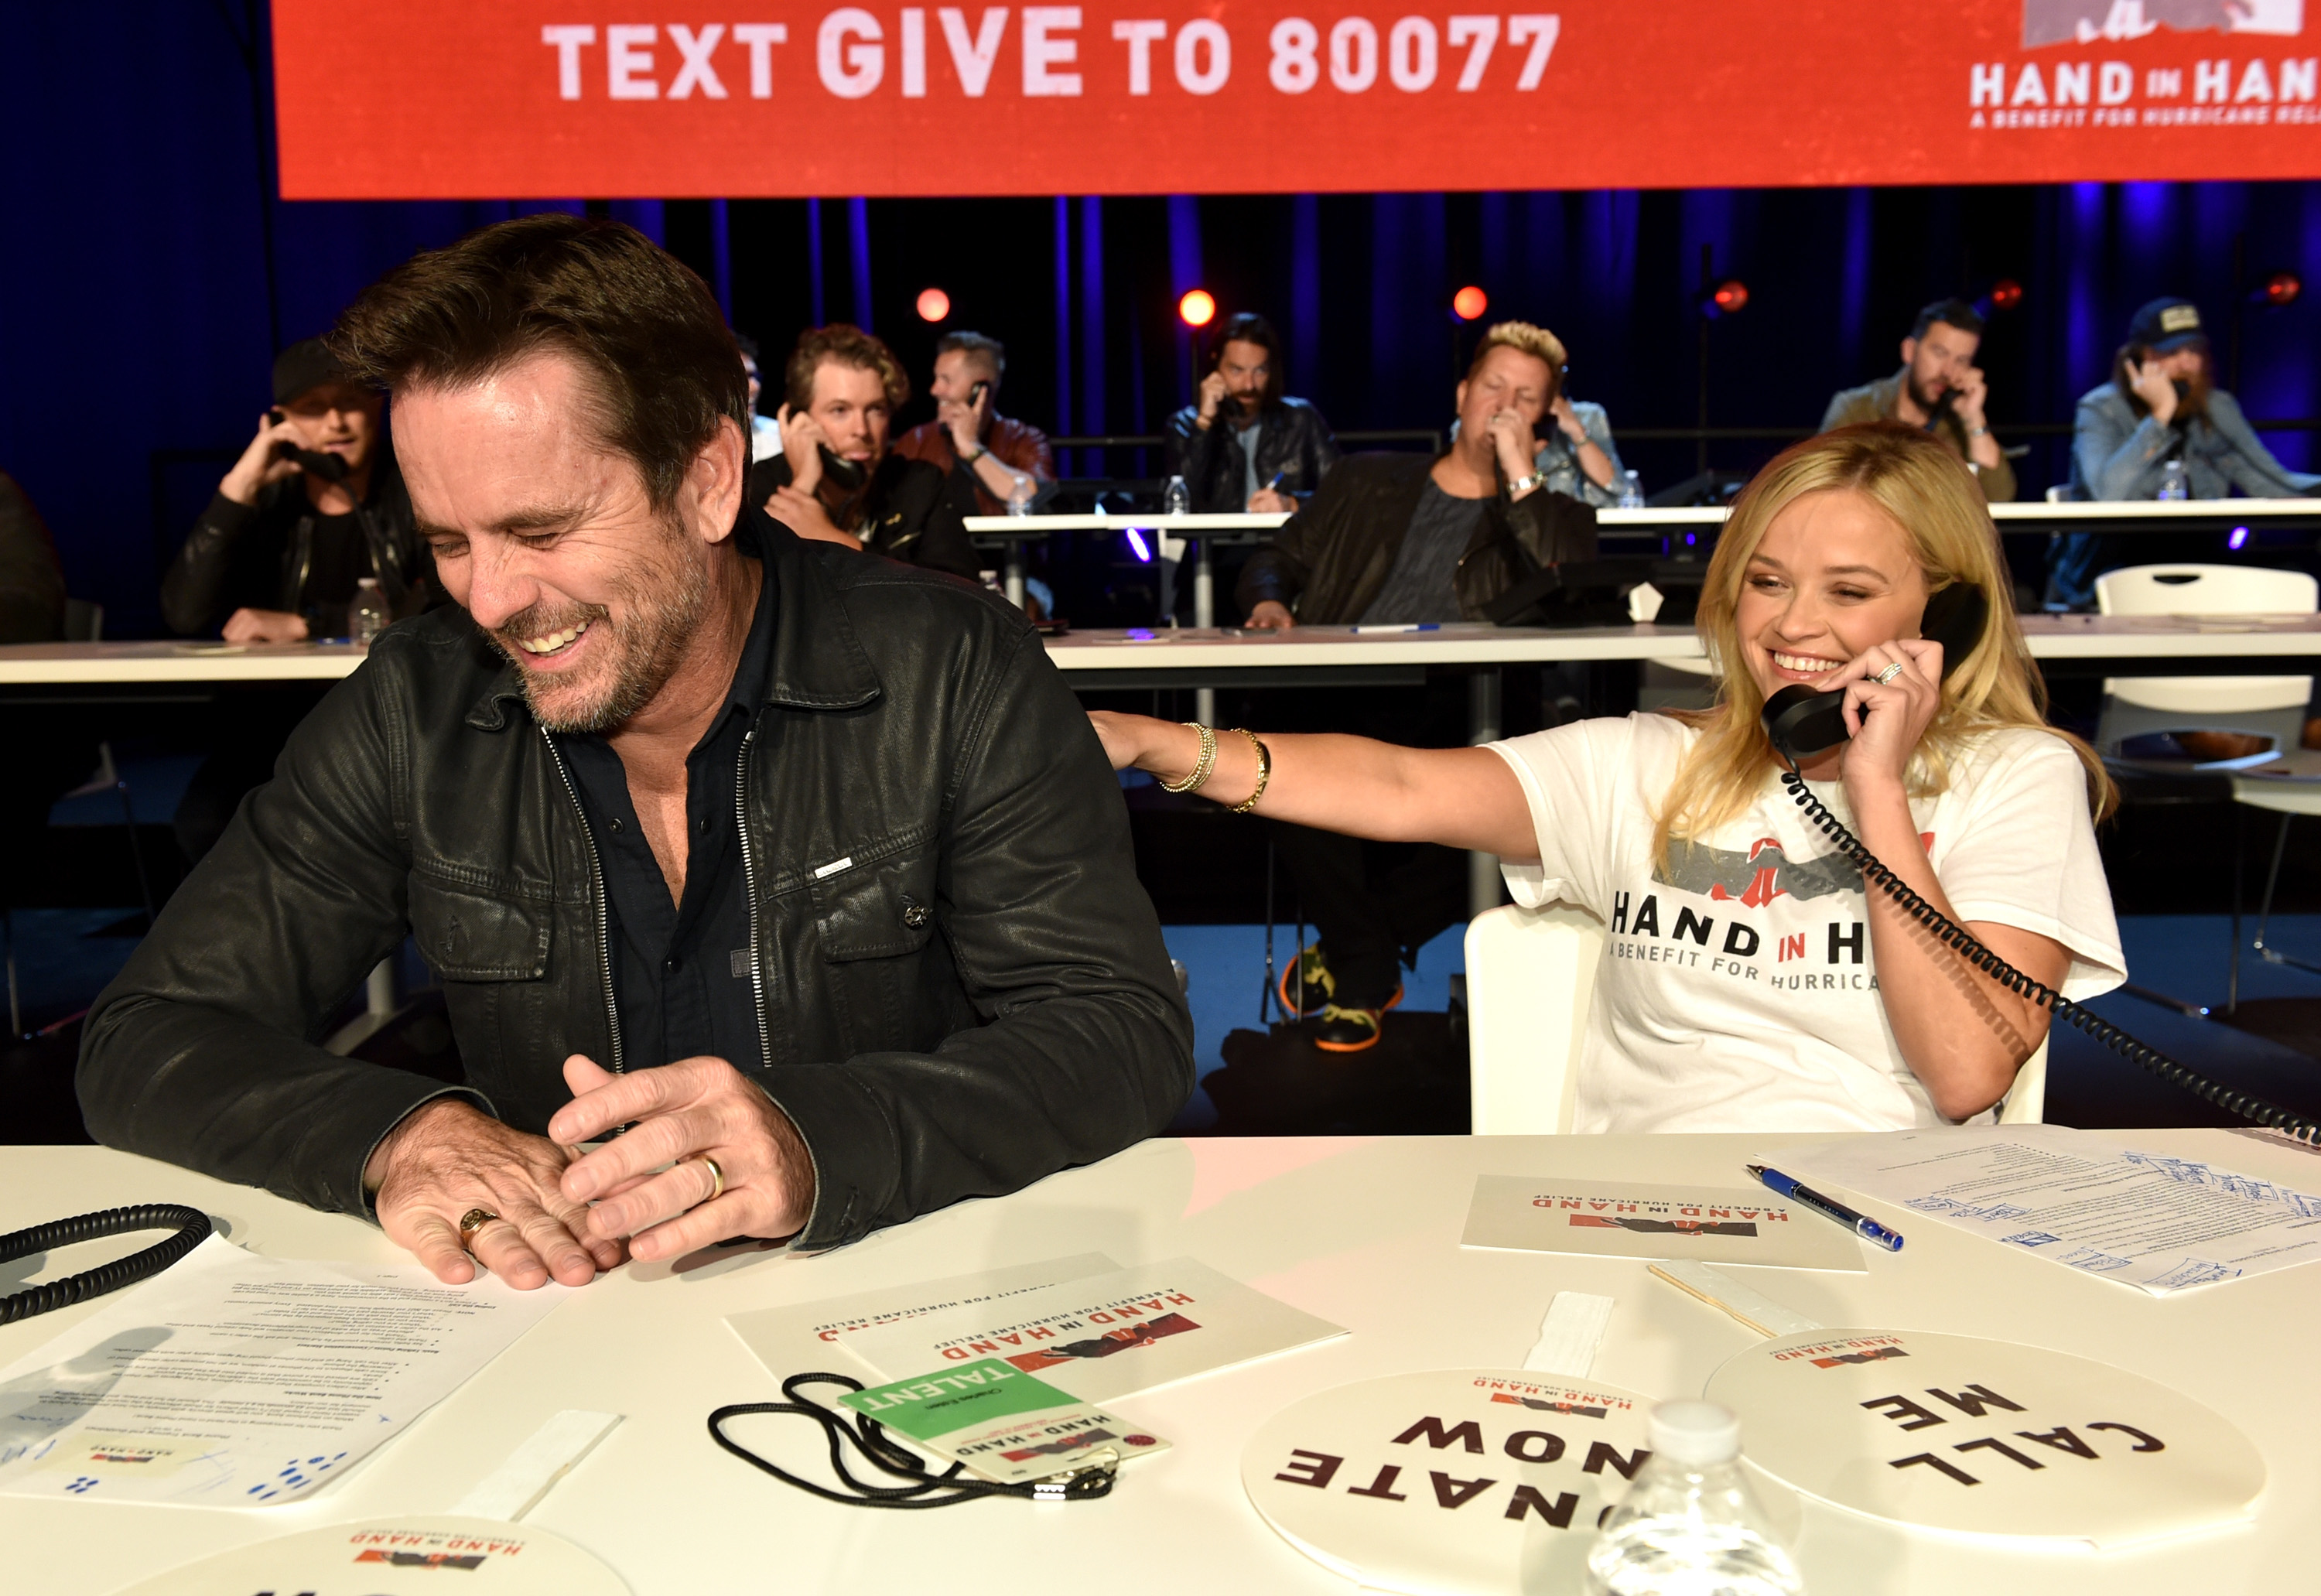 <div class='meta'><div class='origin-logo' data-origin='none'></div><span class='caption-text' data-credit='John Shearer/Hand in Hand/Getty Images'>Charles Esten and Reese Witherspoon attend Hand in Hand: A Benefit for Hurricane Relief at the Grand Ole Opry House on September 12, 2017 in Nashville, Tennessee.</span></div>